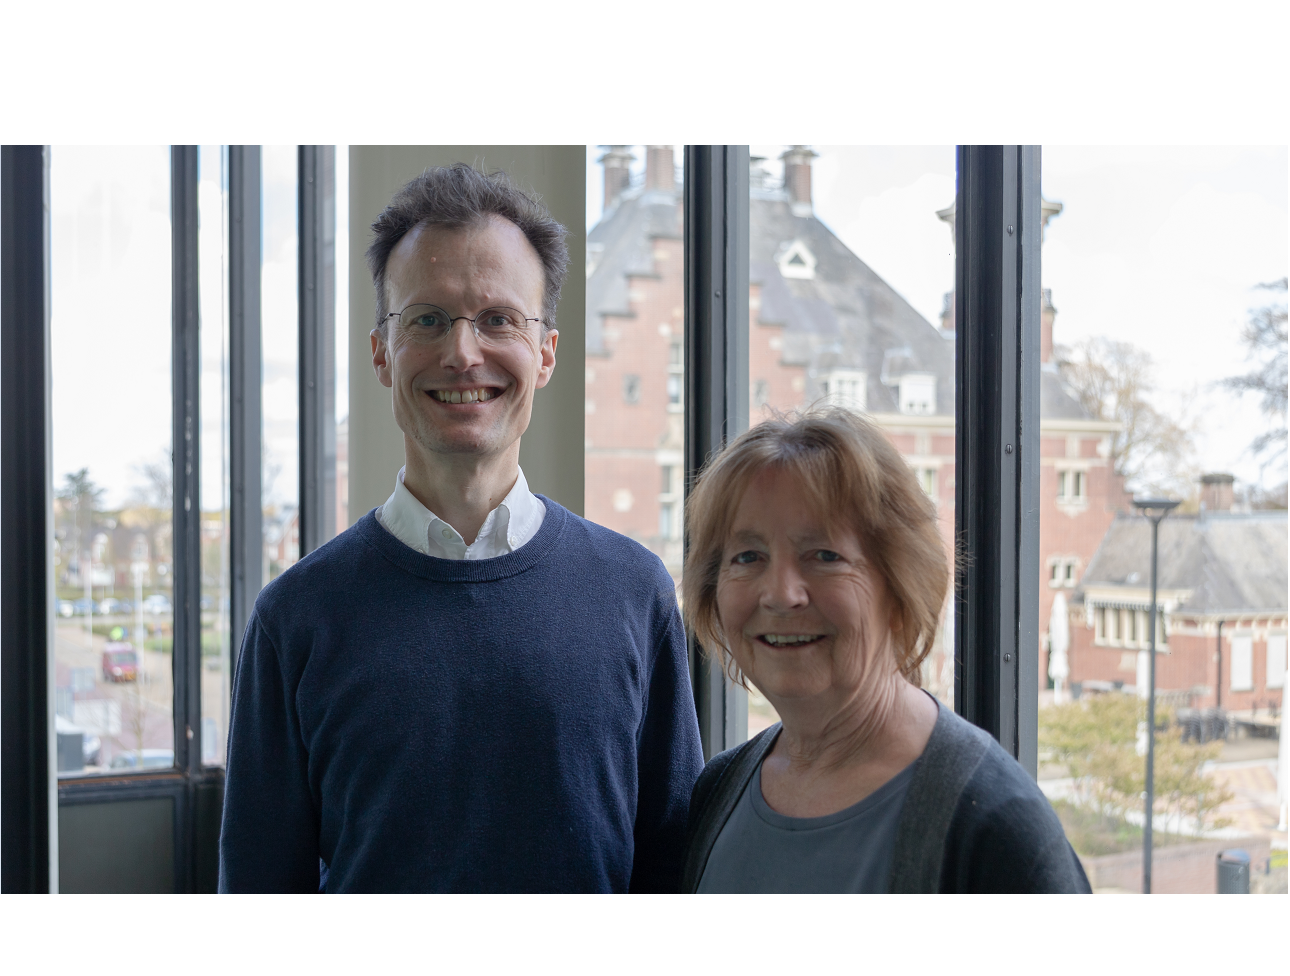 Workshop met Christina Feldman & Chris Cullen | 9 & 10 mei 2020